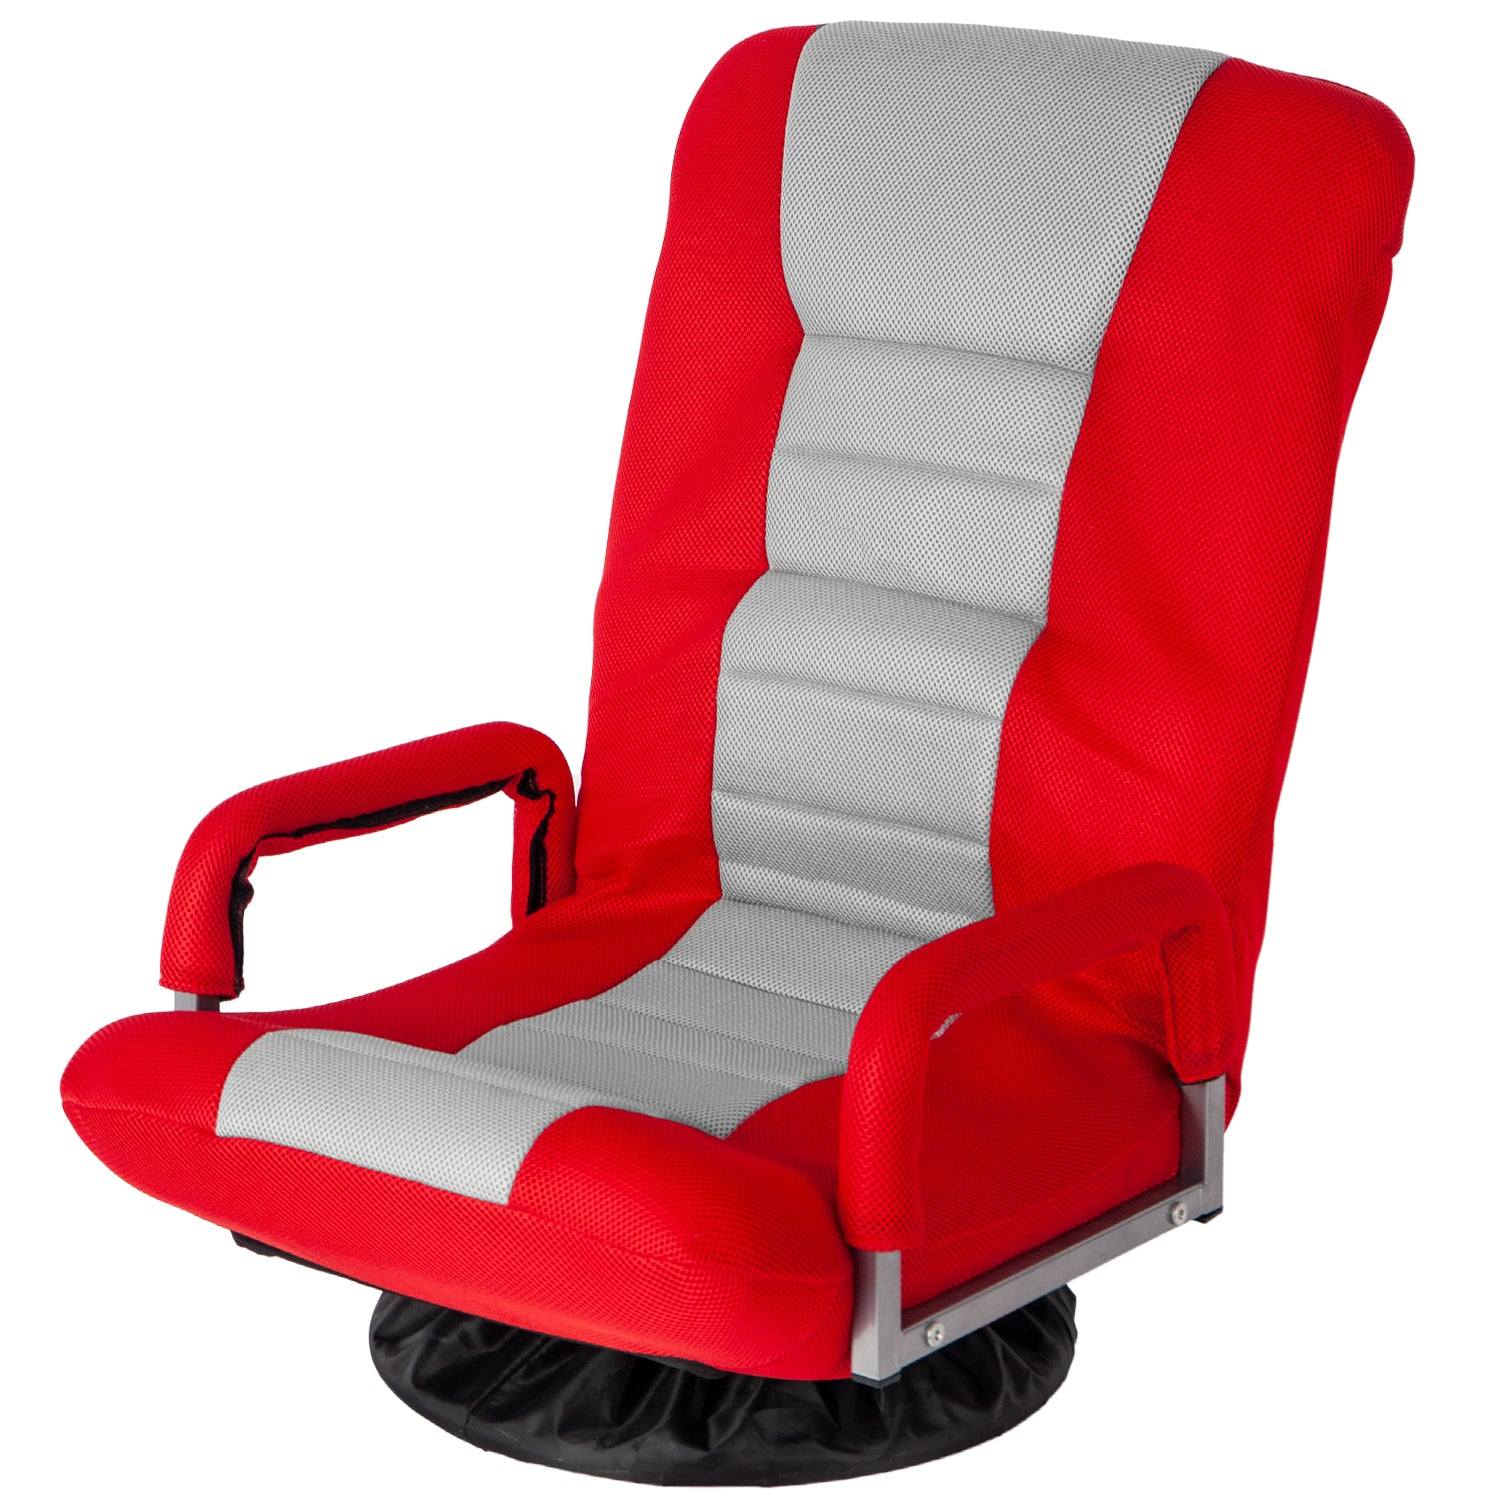 Red Swivel Video Rocker Gaming Chair Adjustable 7-Position Floor Chair Folding Sofa Lounger BH037464